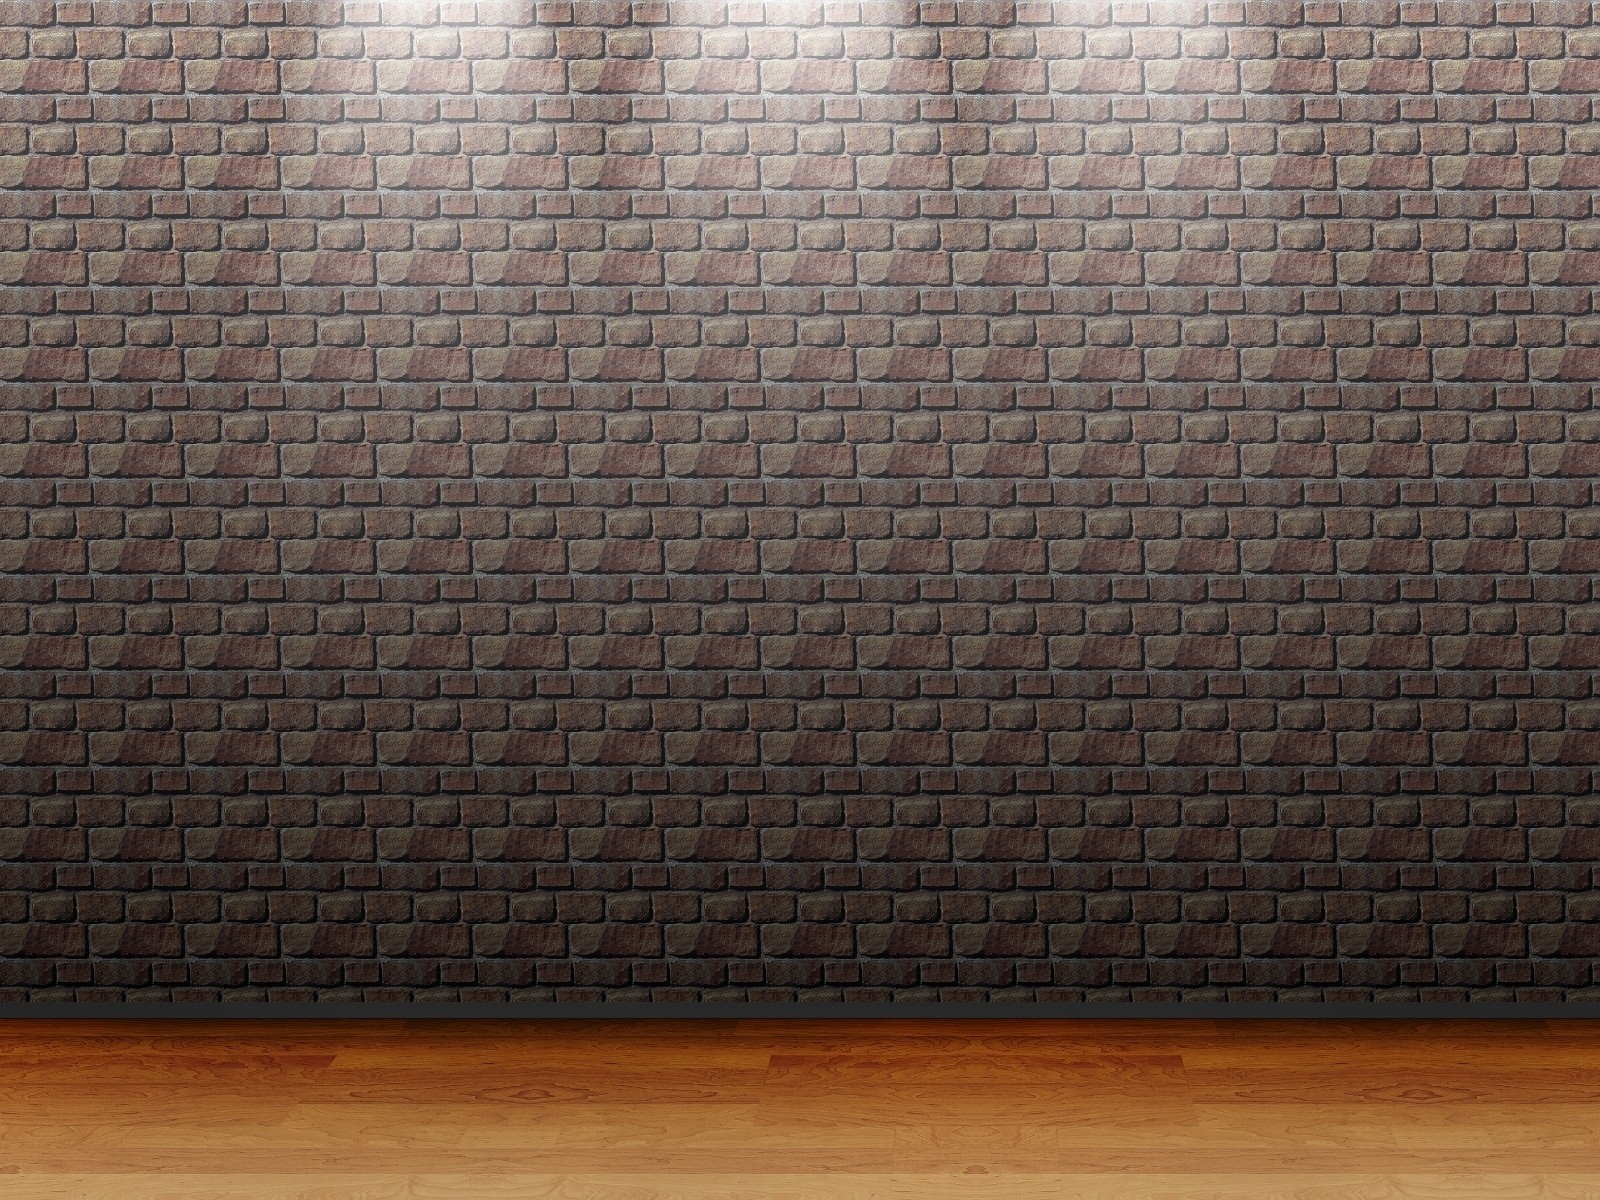 wallpaper, pattern, cg